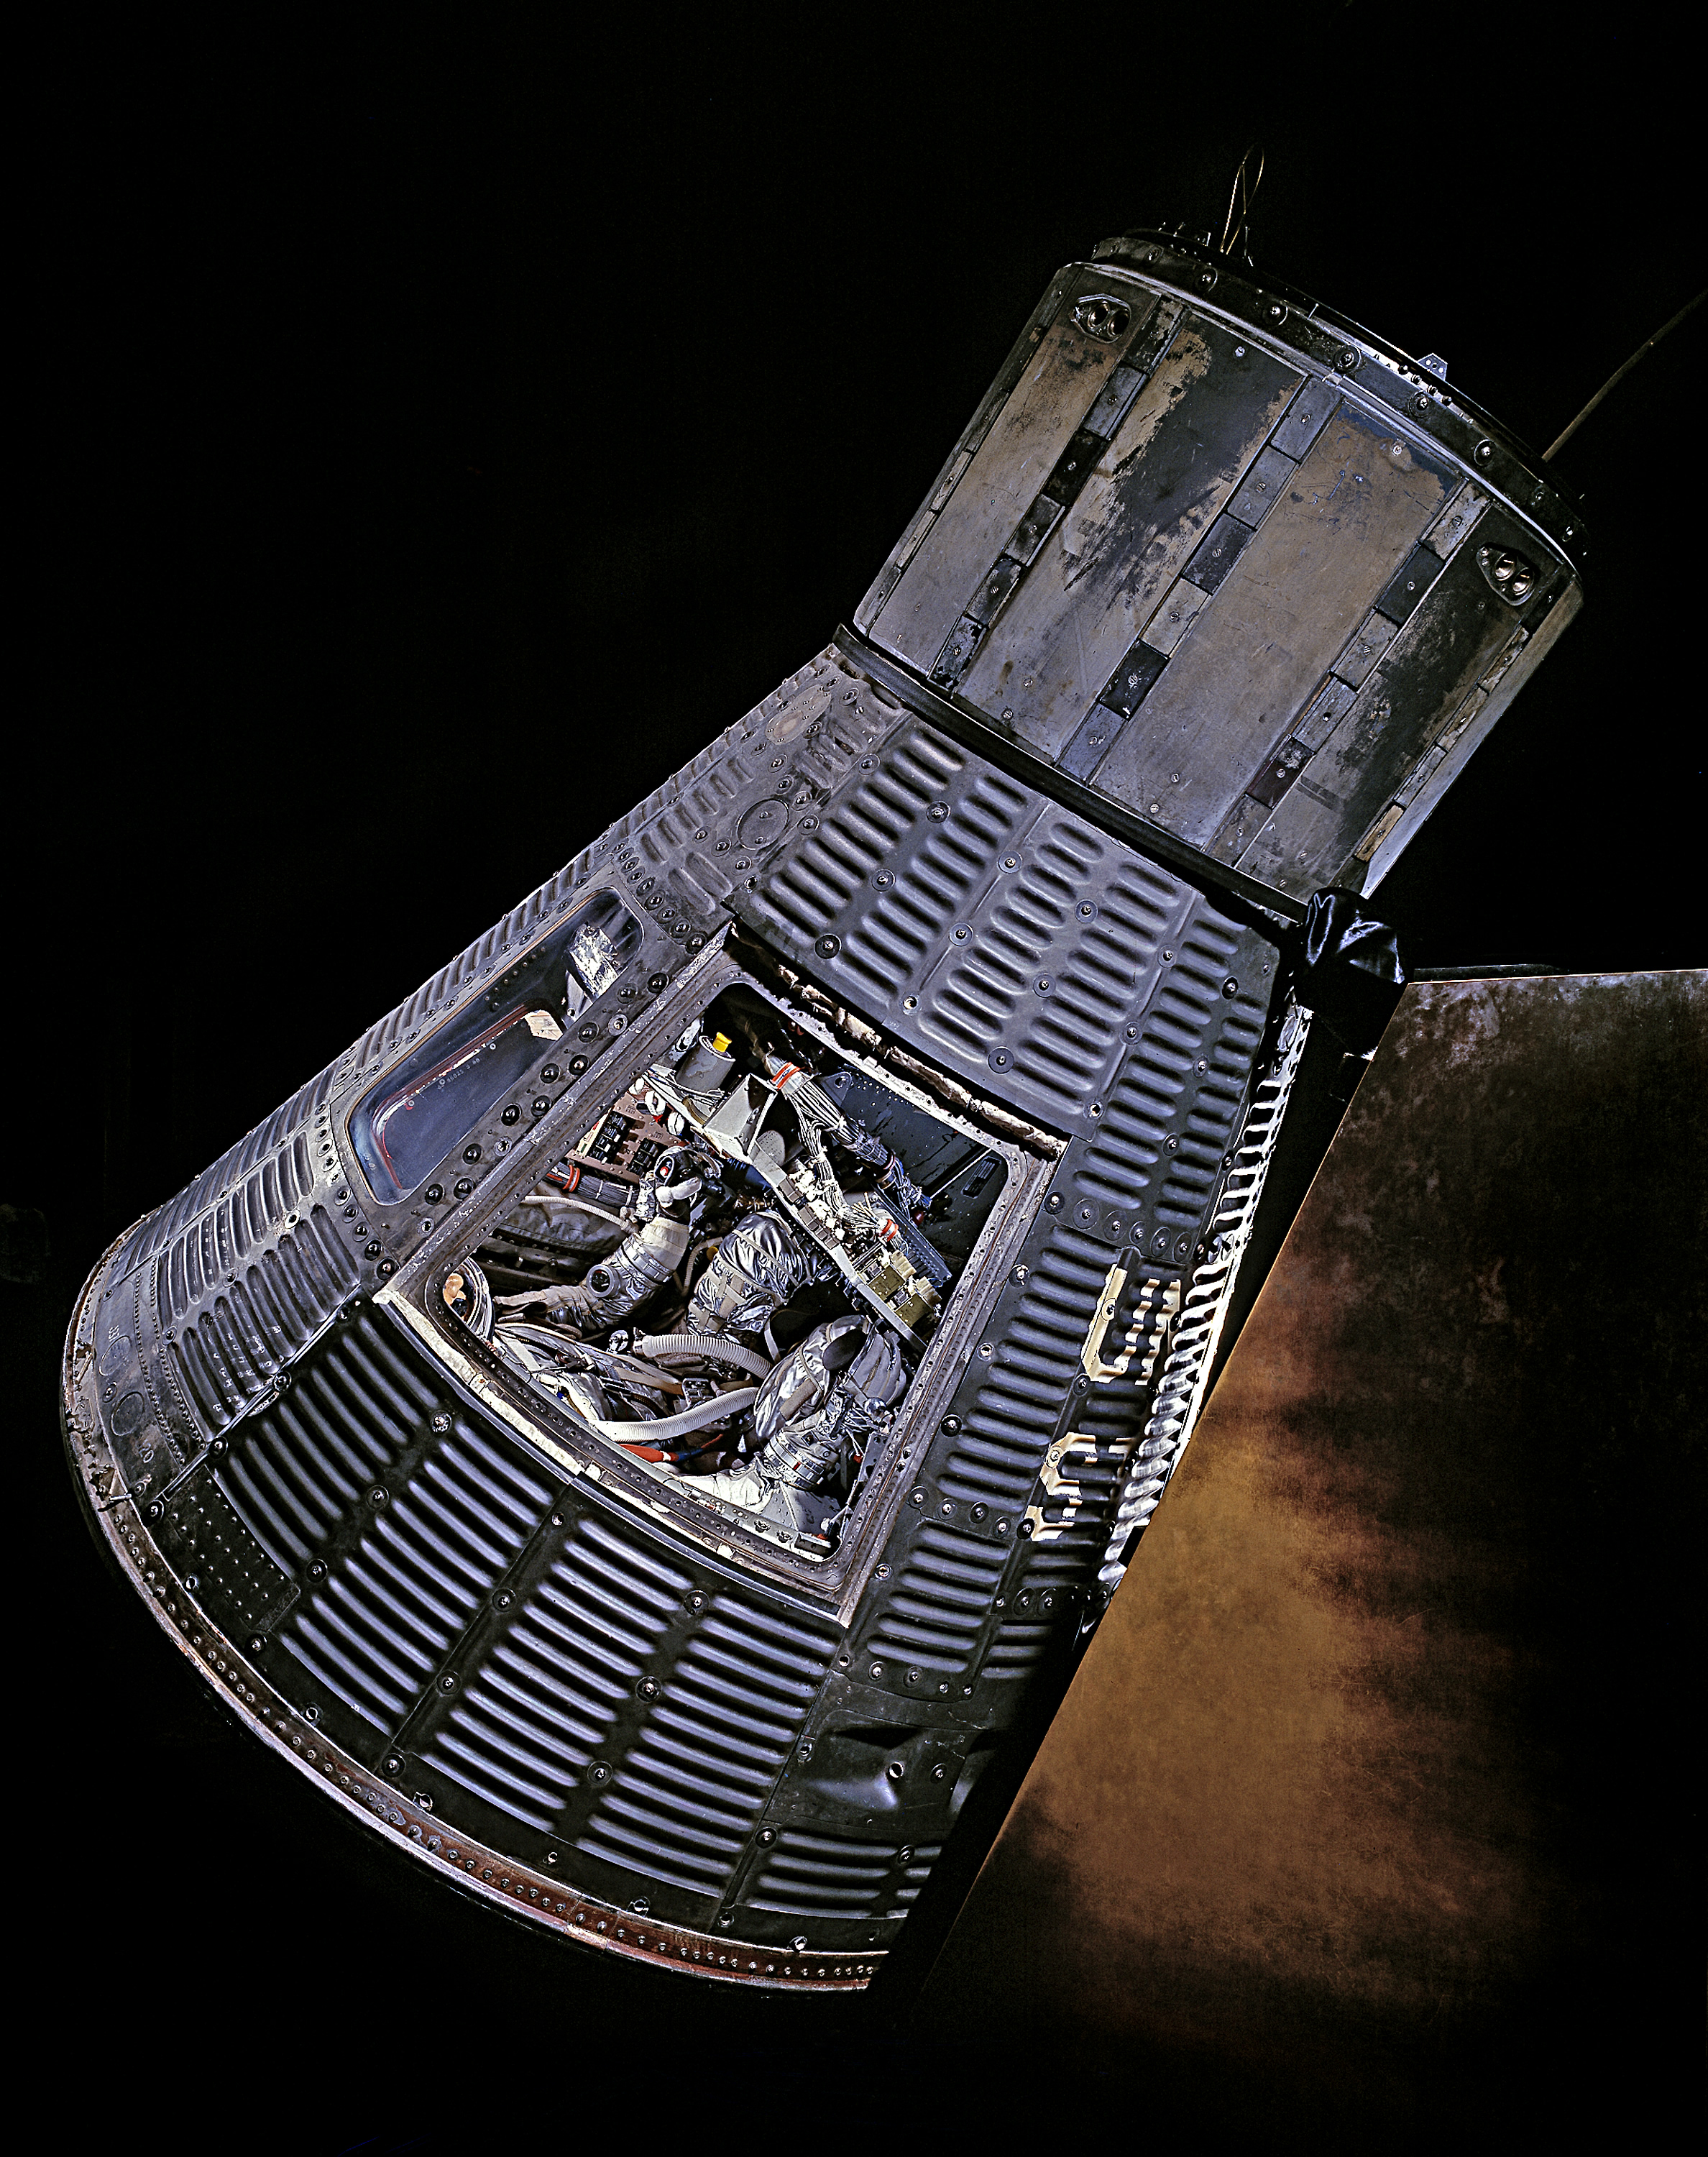 Mercury Capsule MA-6 <em>Friendship 7</em>